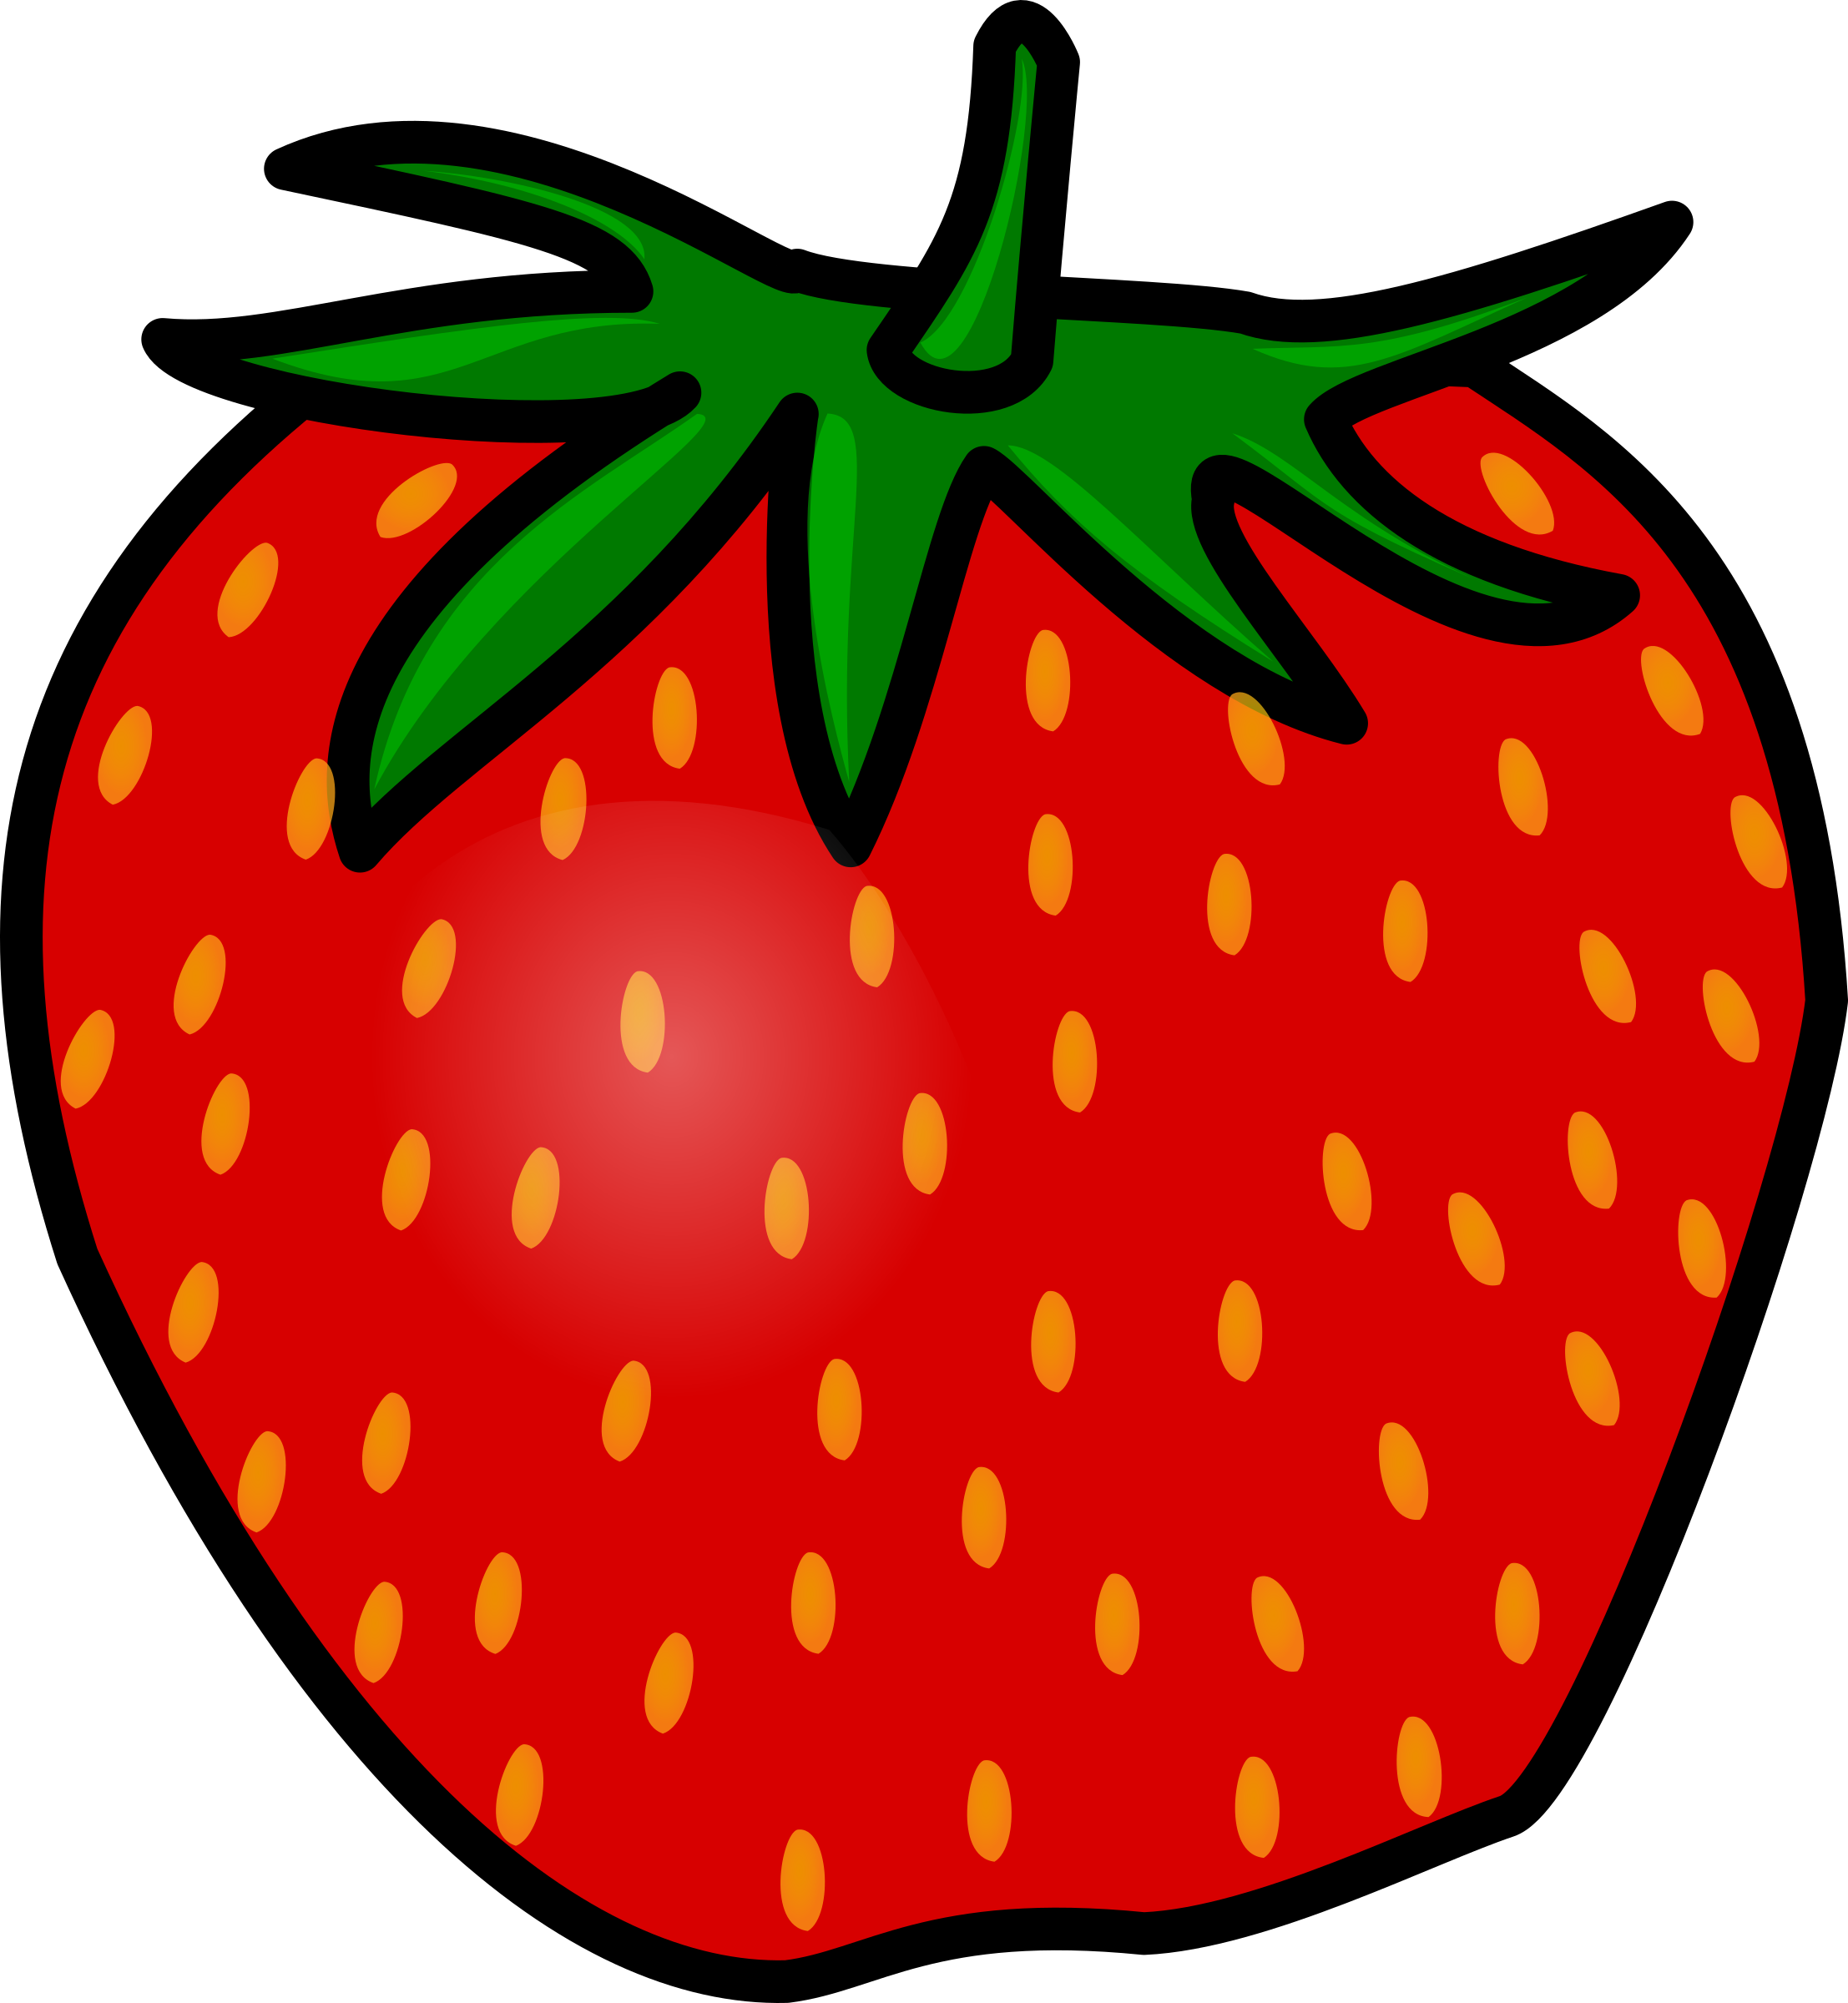 Strawberry. Berries clipart transparent background